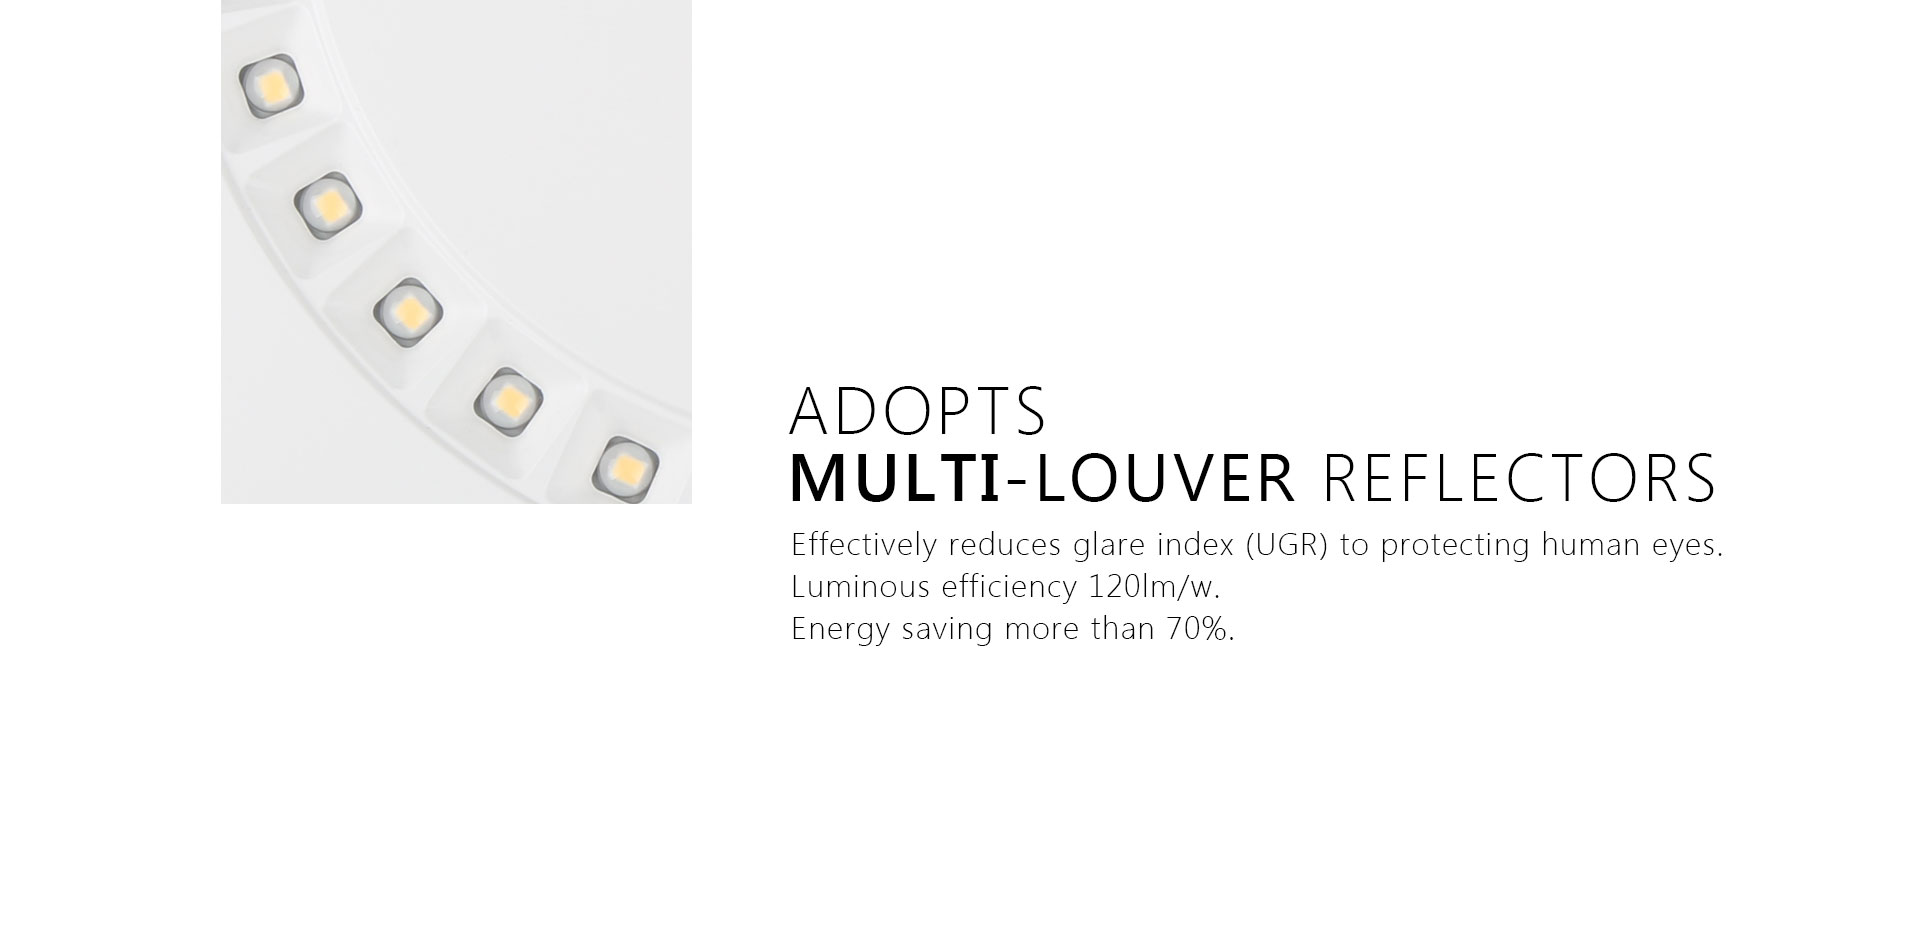 LED Ceiling Light With Multilouver Reflectors_02